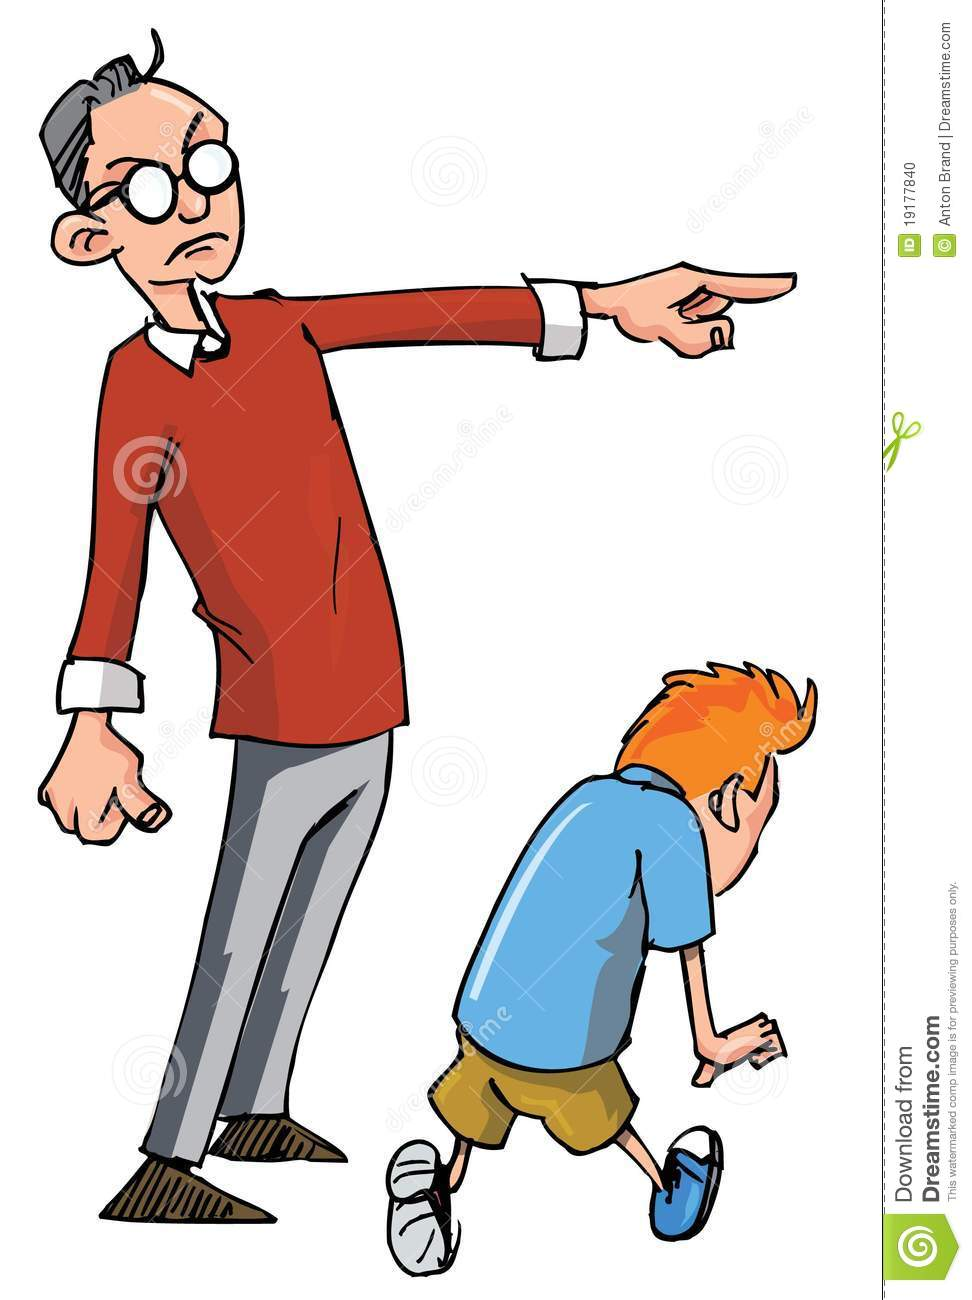 More similar stock images of ` Cartoon of Dad scolding his son `